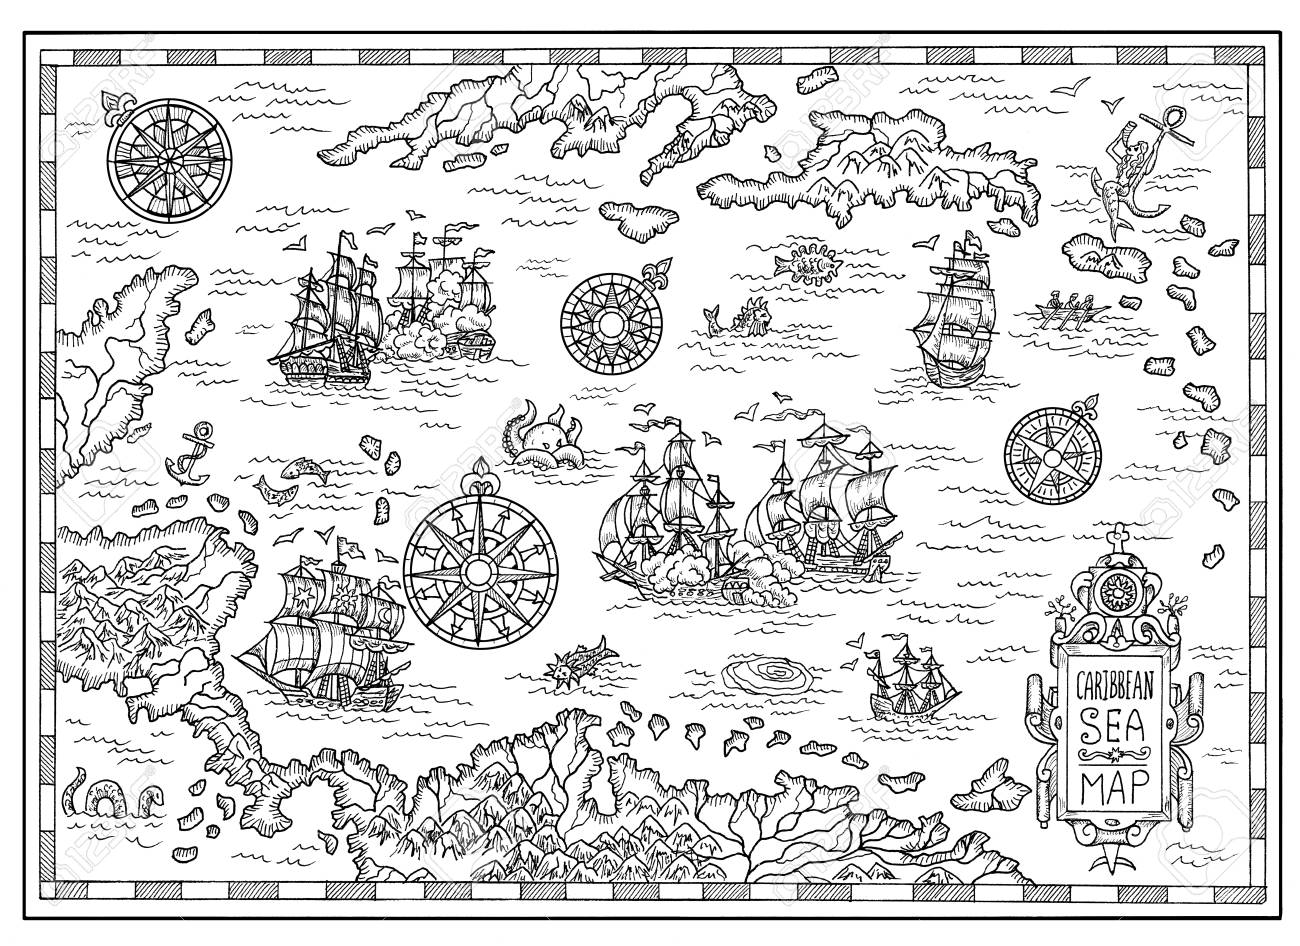 Black And White Pirate Map Of The Caribbean Sea With Old Ships ...